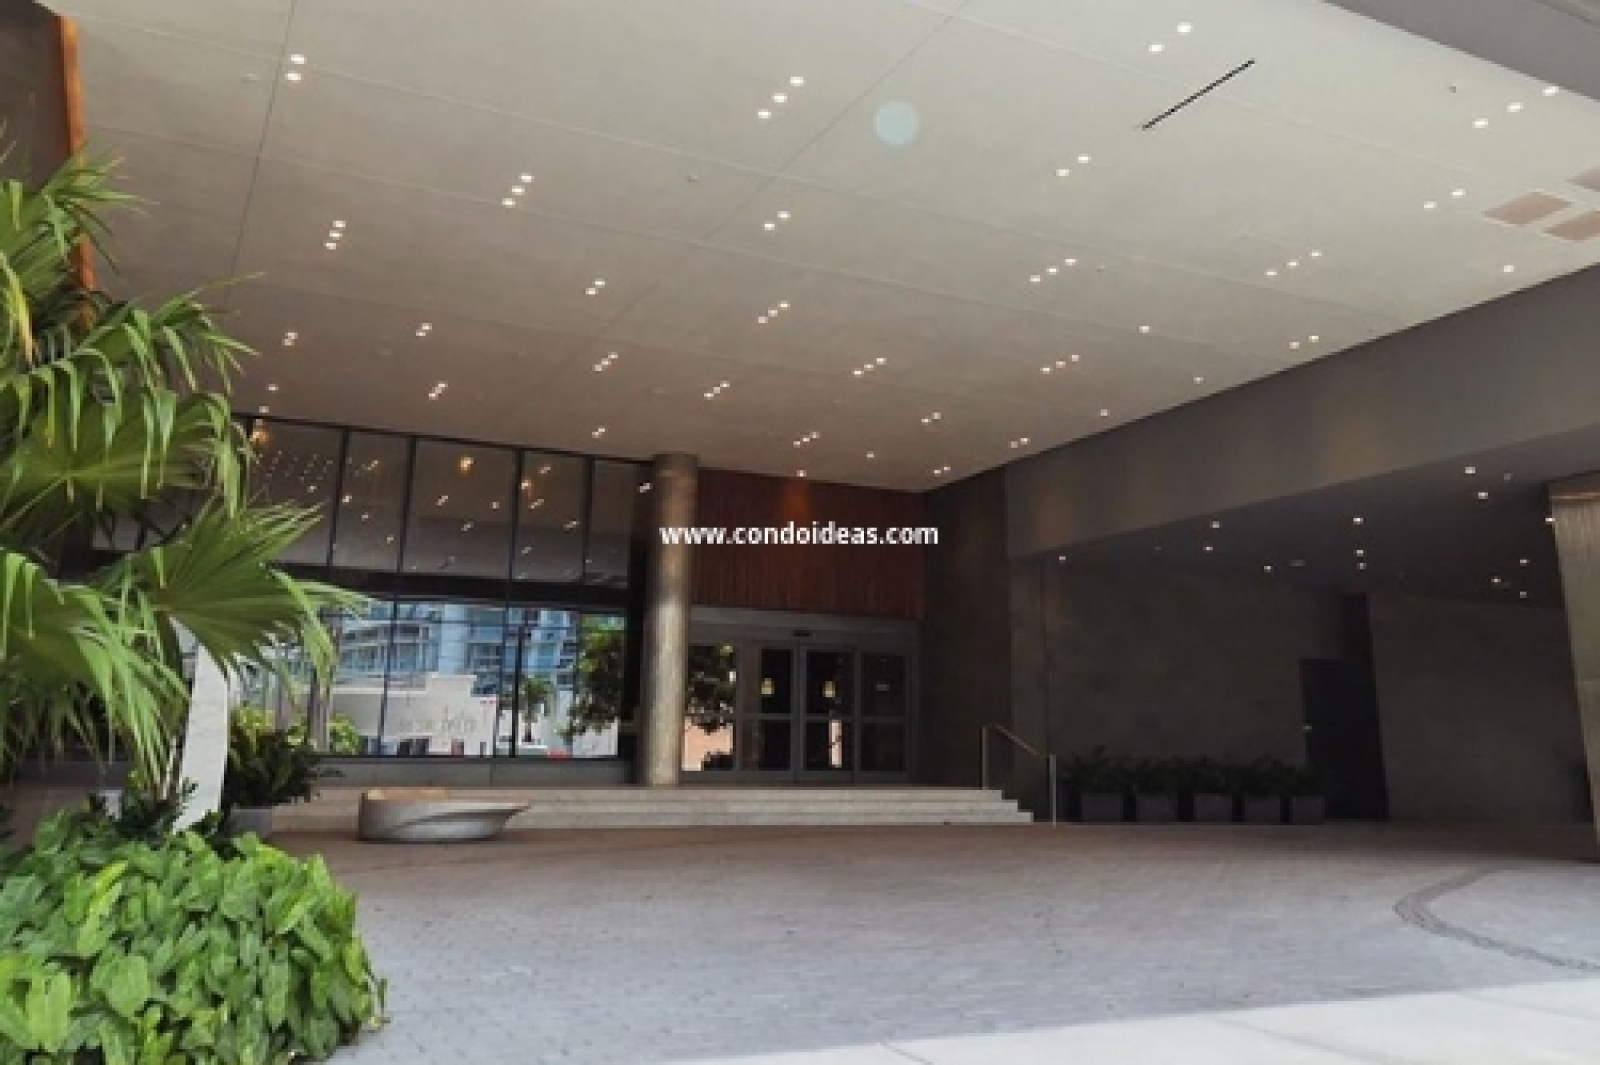 Brickell City Centre Rise condo